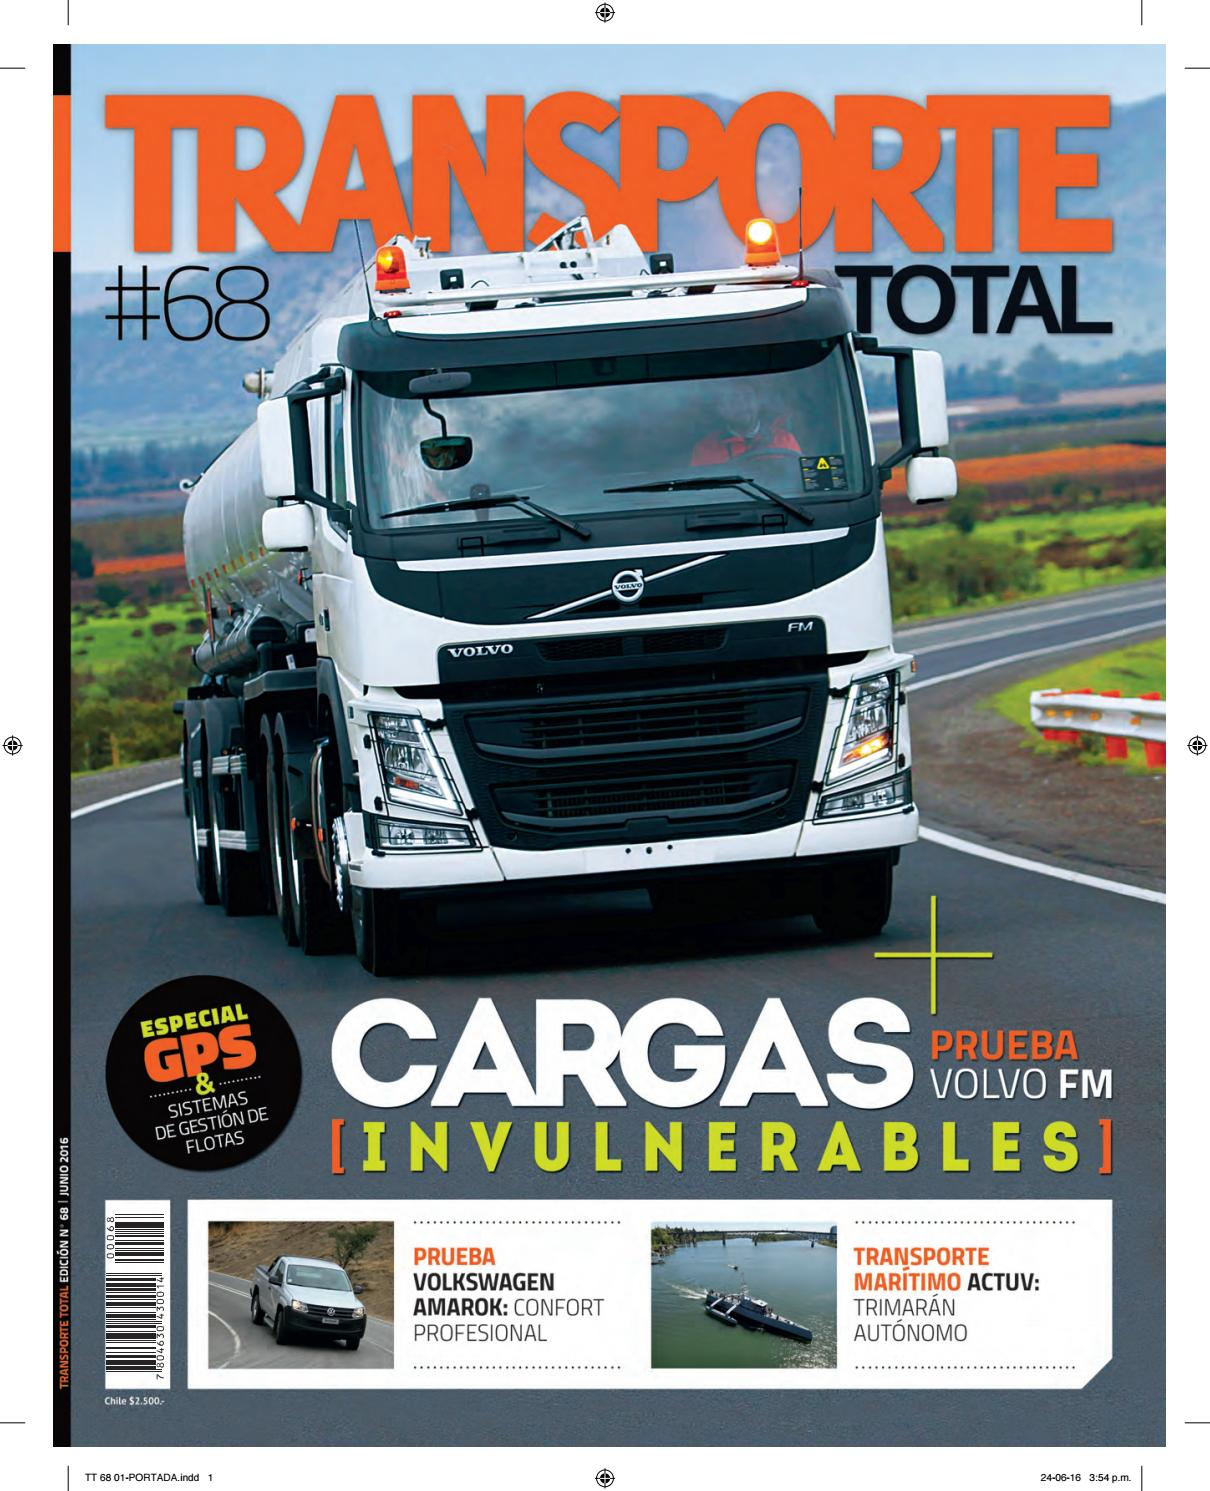 Revista Transporte Total Nº 68 (JUNIO 2016) by RS Chile - issuu